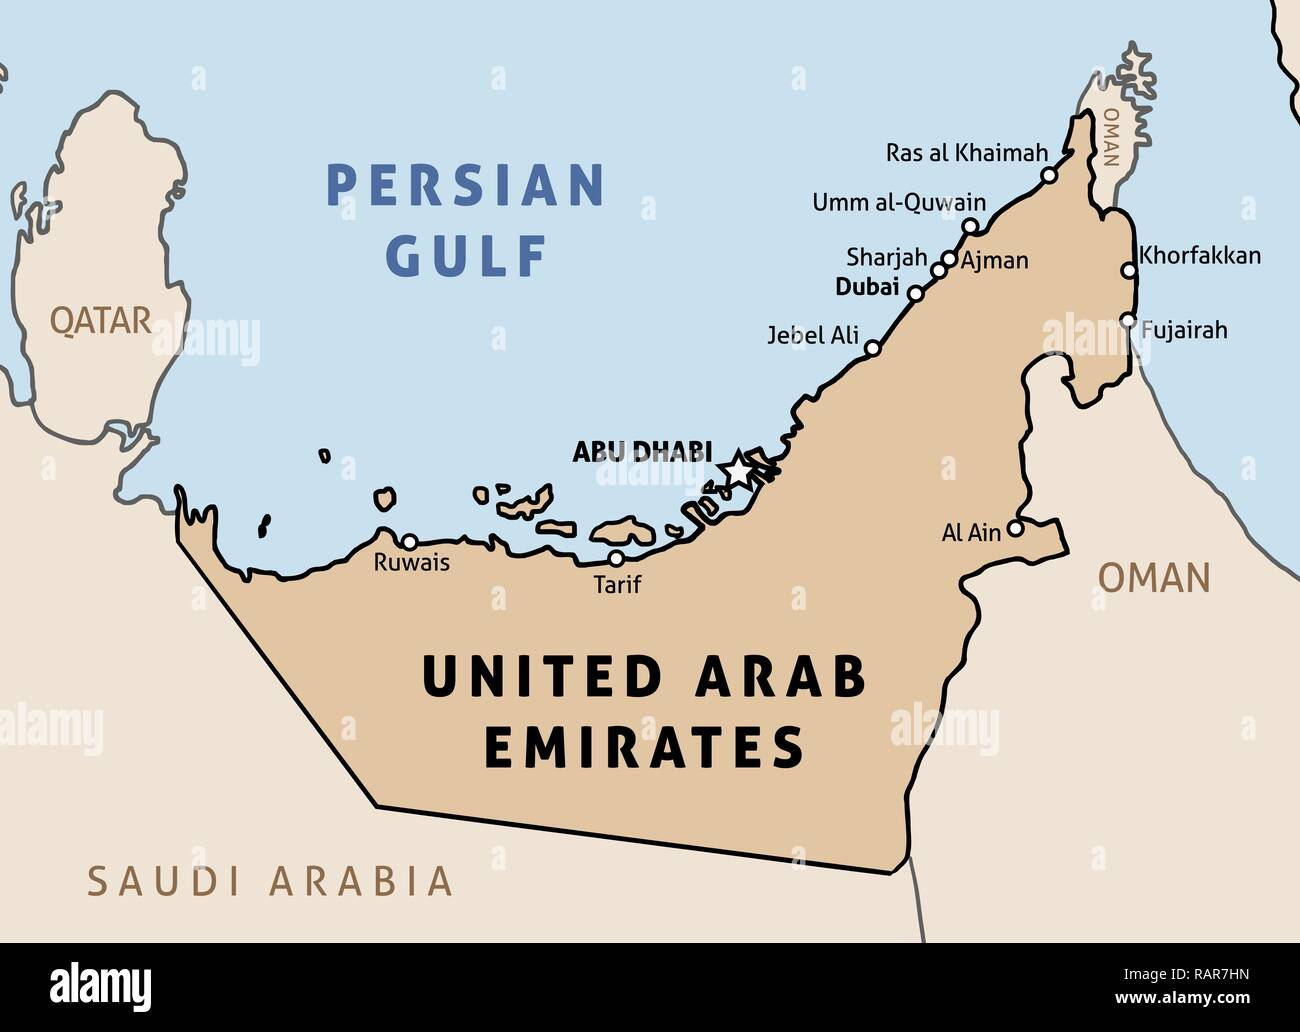 United Arab Emirates (UAE) map. Outline vector country map with main cities and data table. - Stock Vector